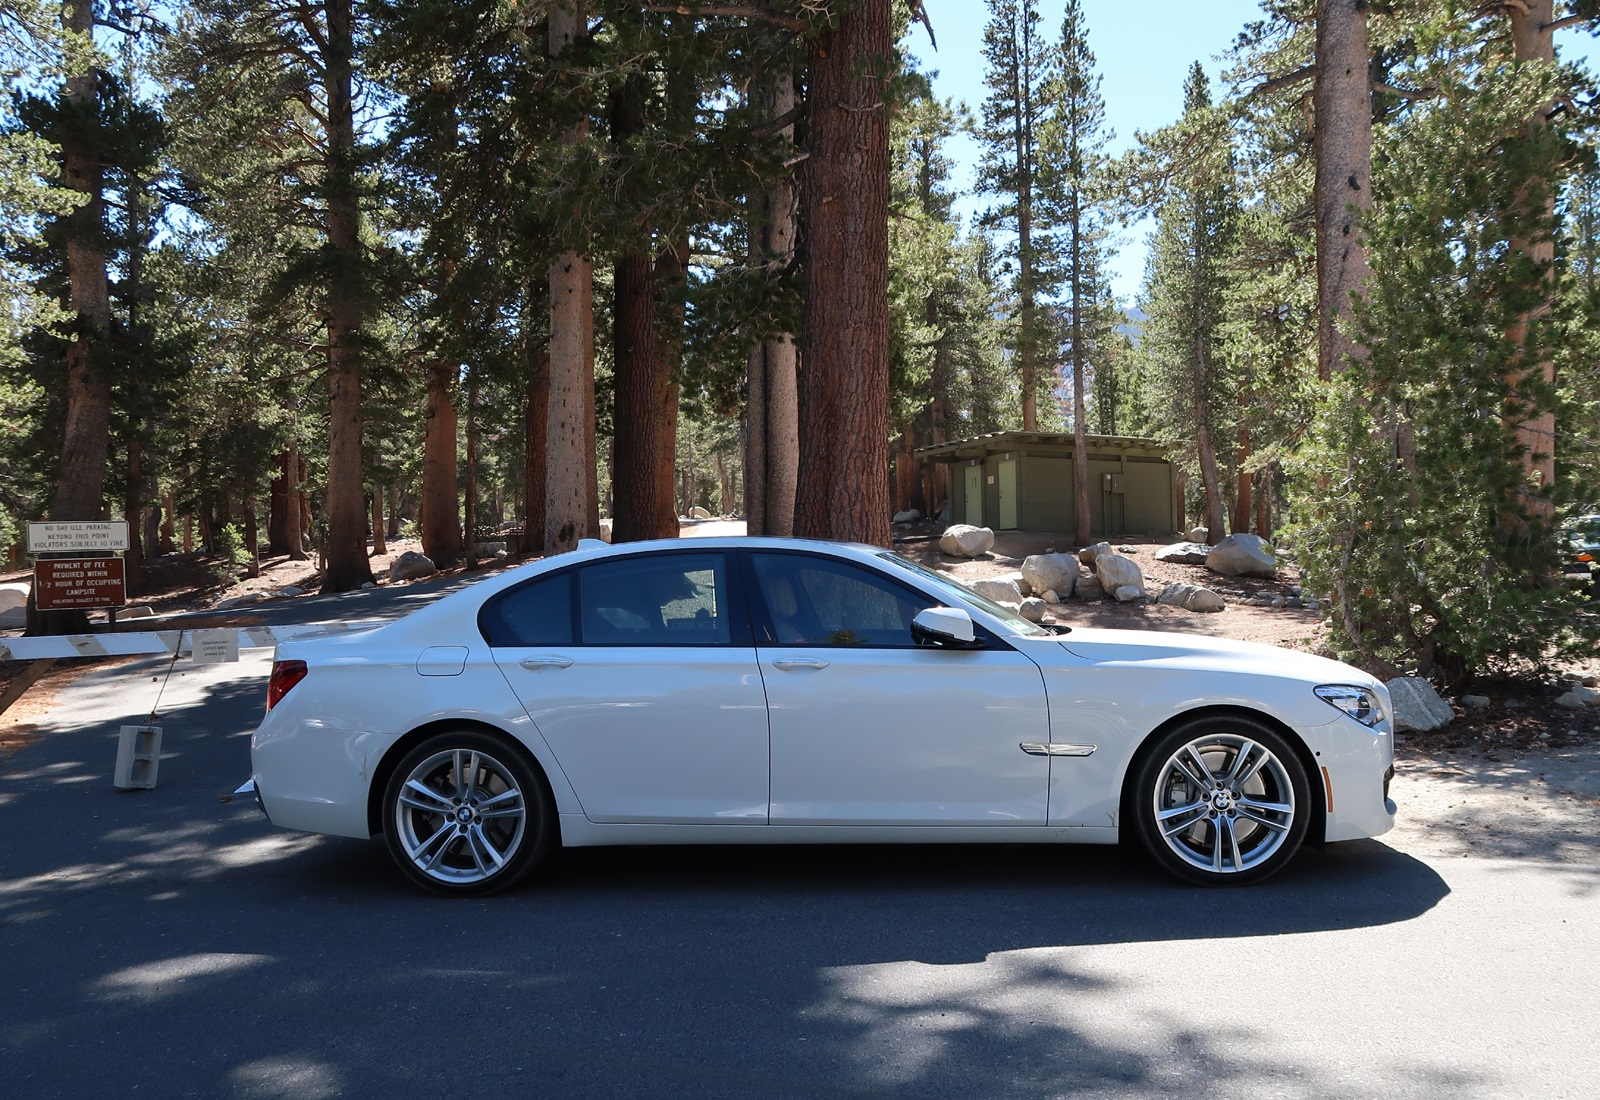 2015_bmw_750i_mammoth_roadtrip_5